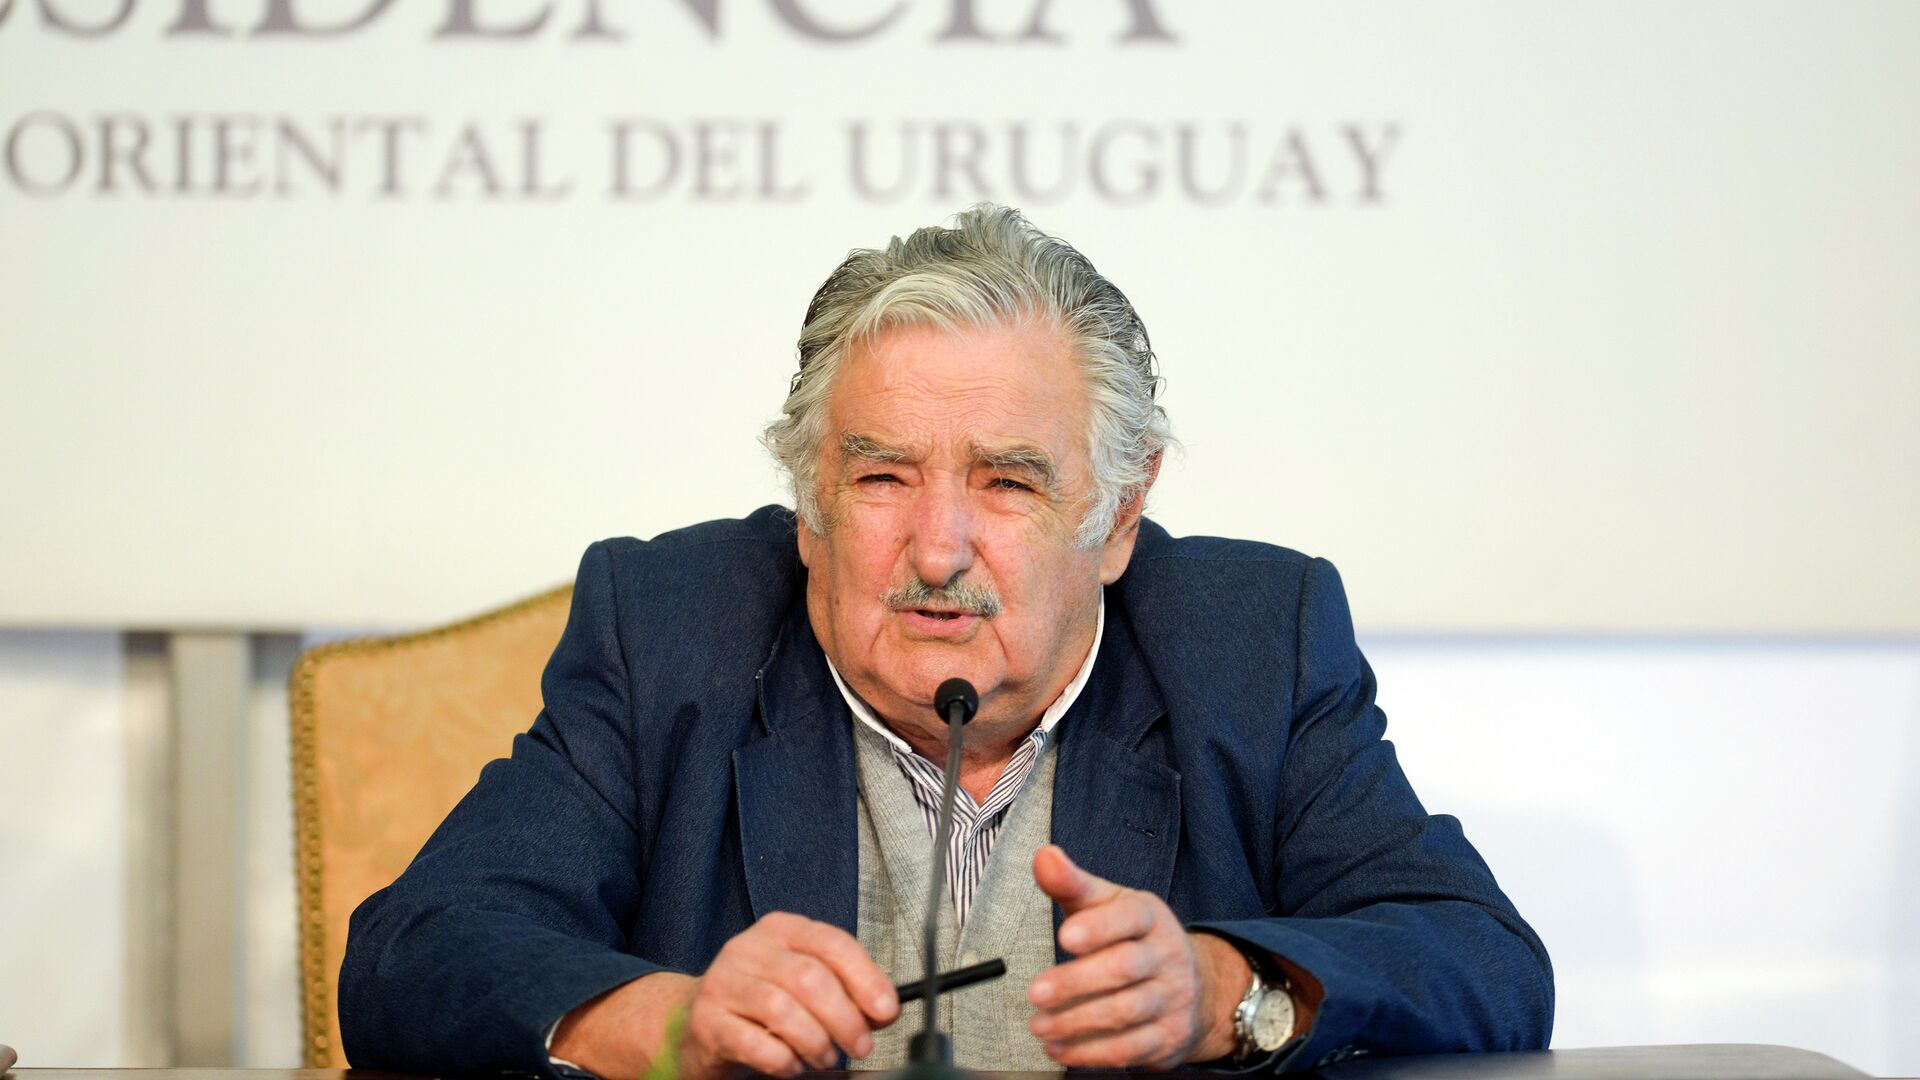 Uruguay's President Jose Mujica speaks during a joint news conference with Chile's President Michelle Bachelet - Sputnik Mundo, 1920, 25.05.2021